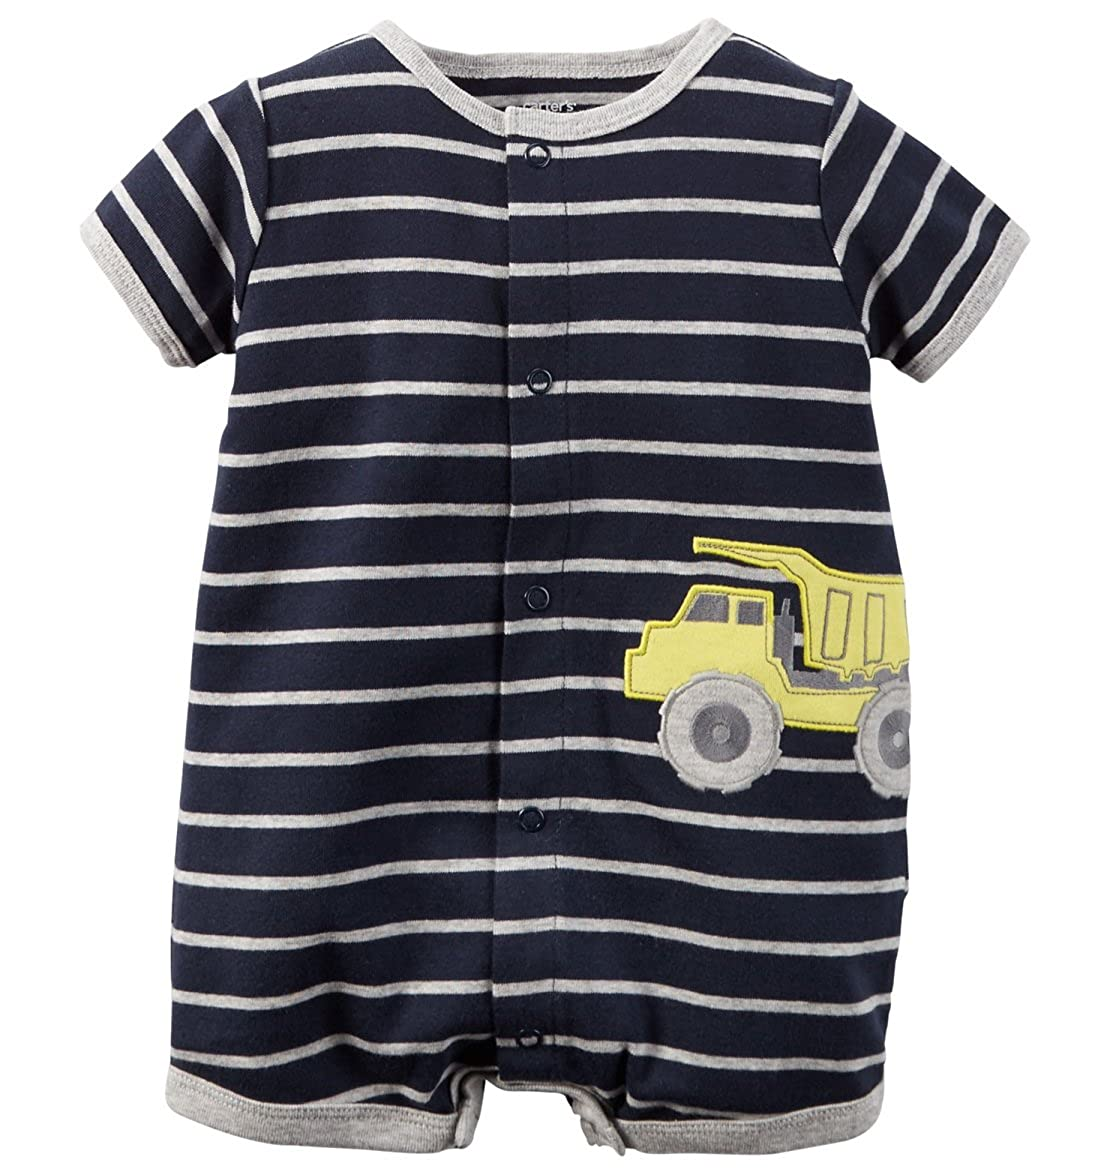 Carters Baby Boys Striped Romper